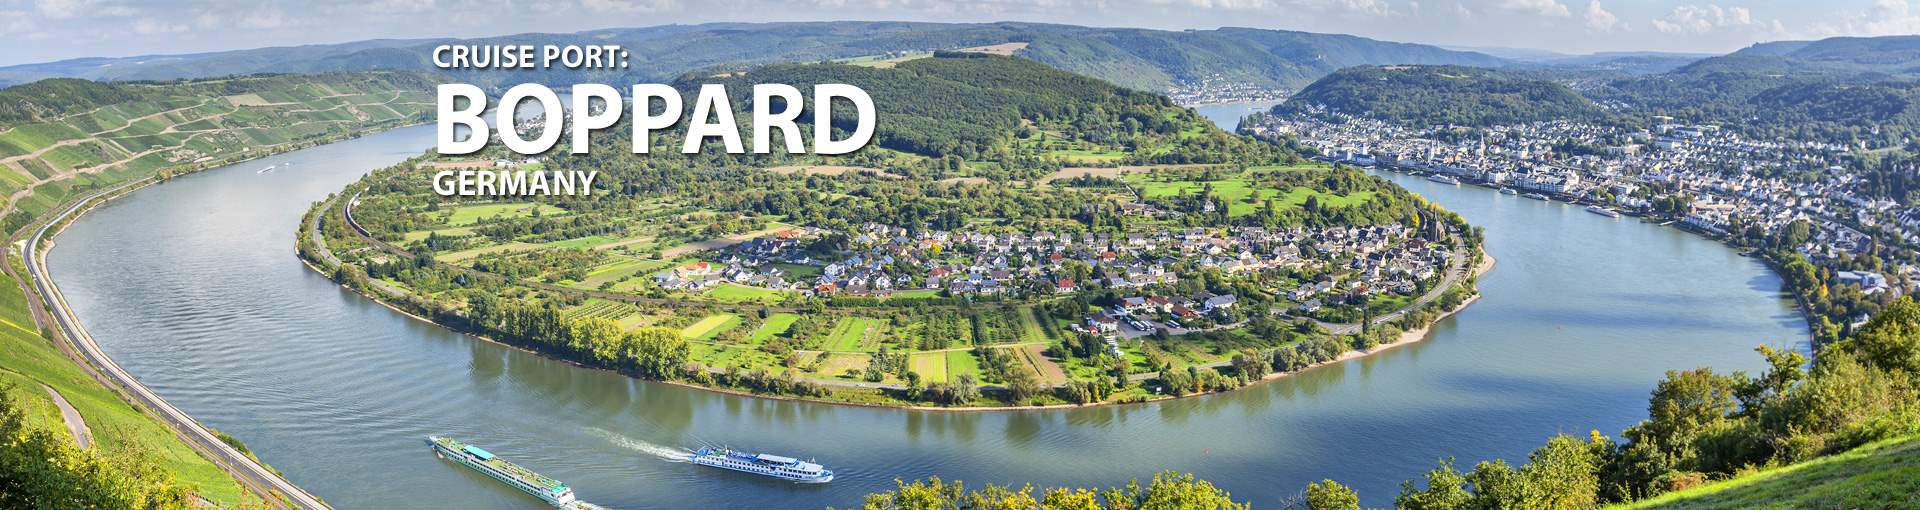 Cruises to Boppard, Germany